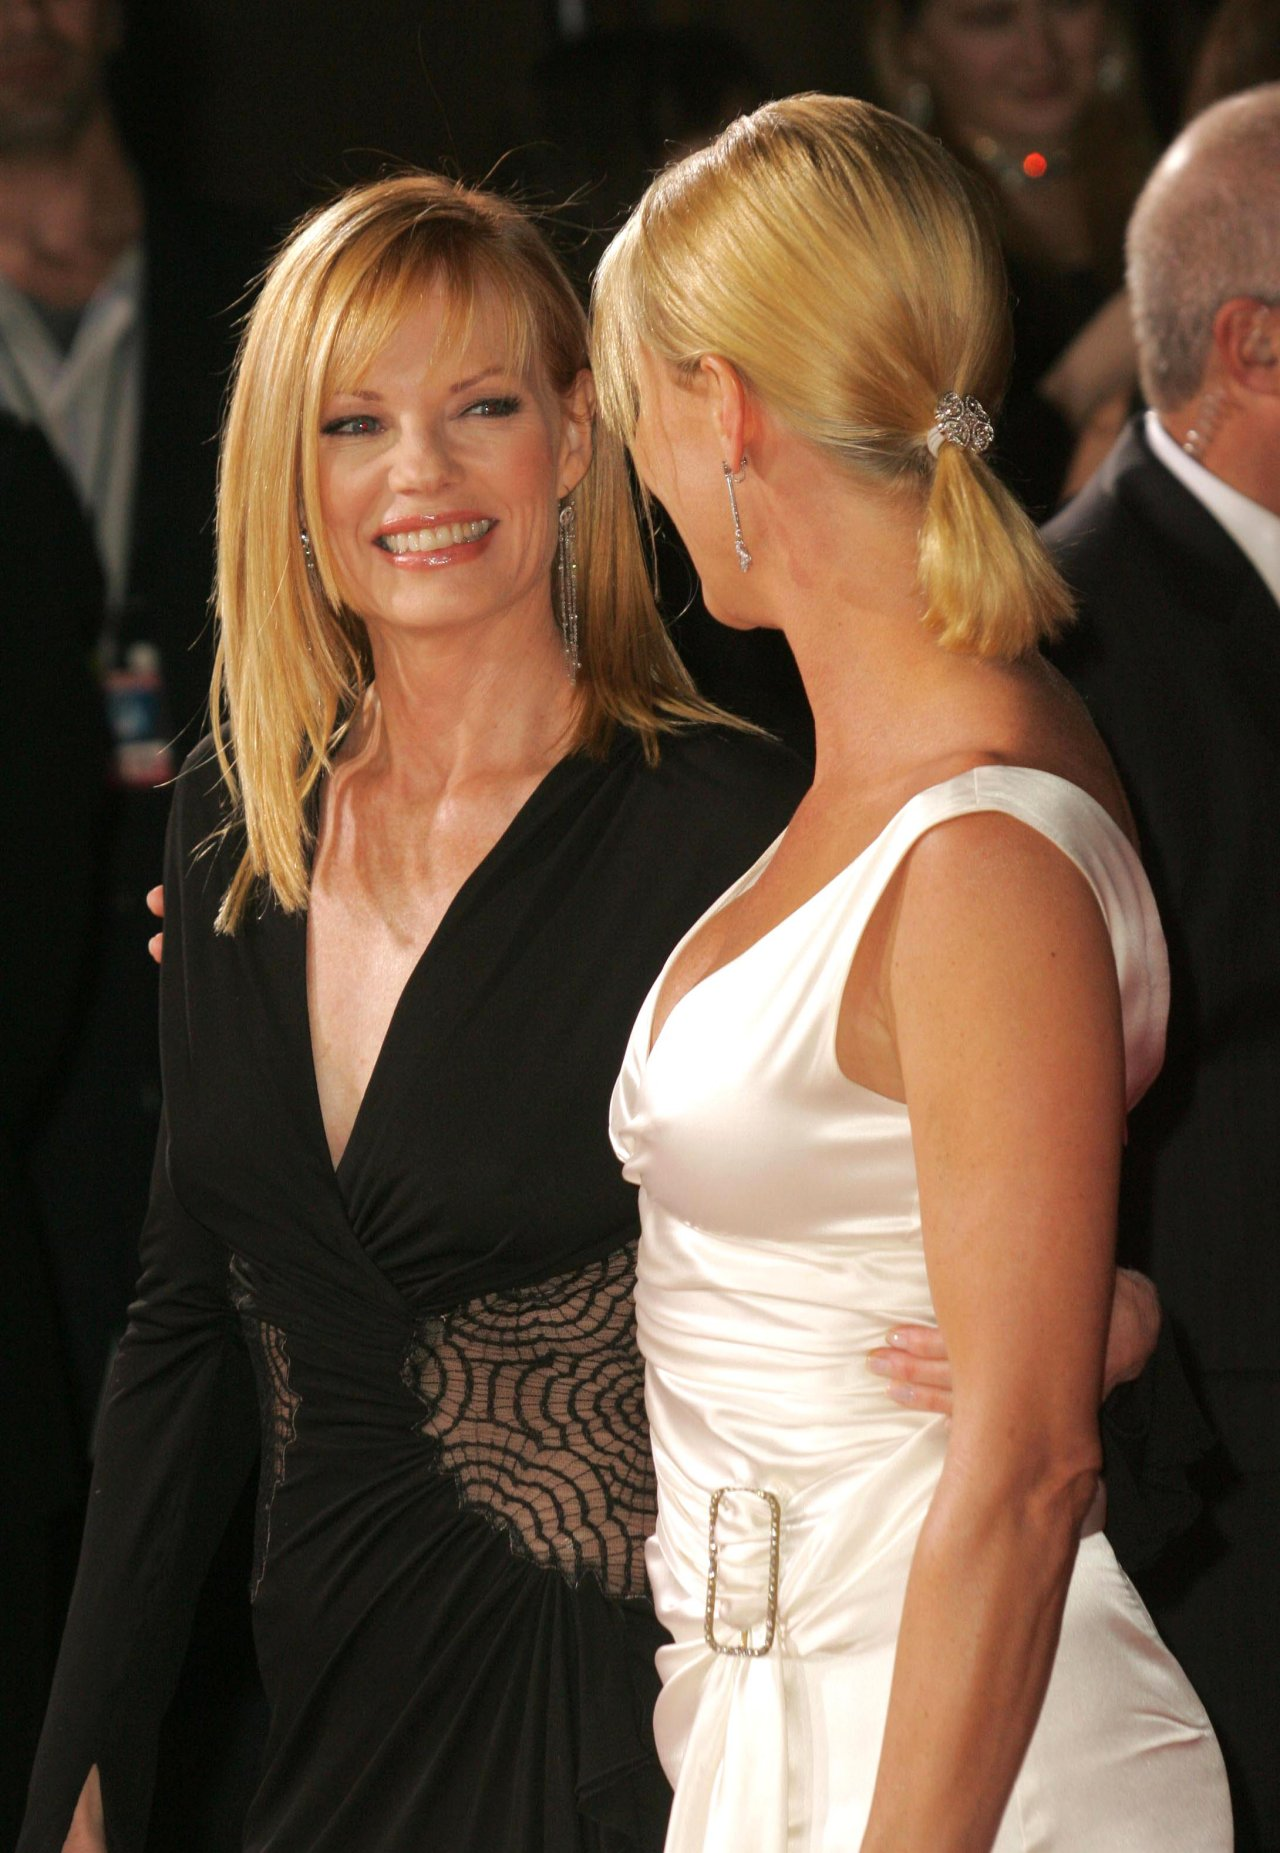 Marg Helgenberger leaked wallpapers